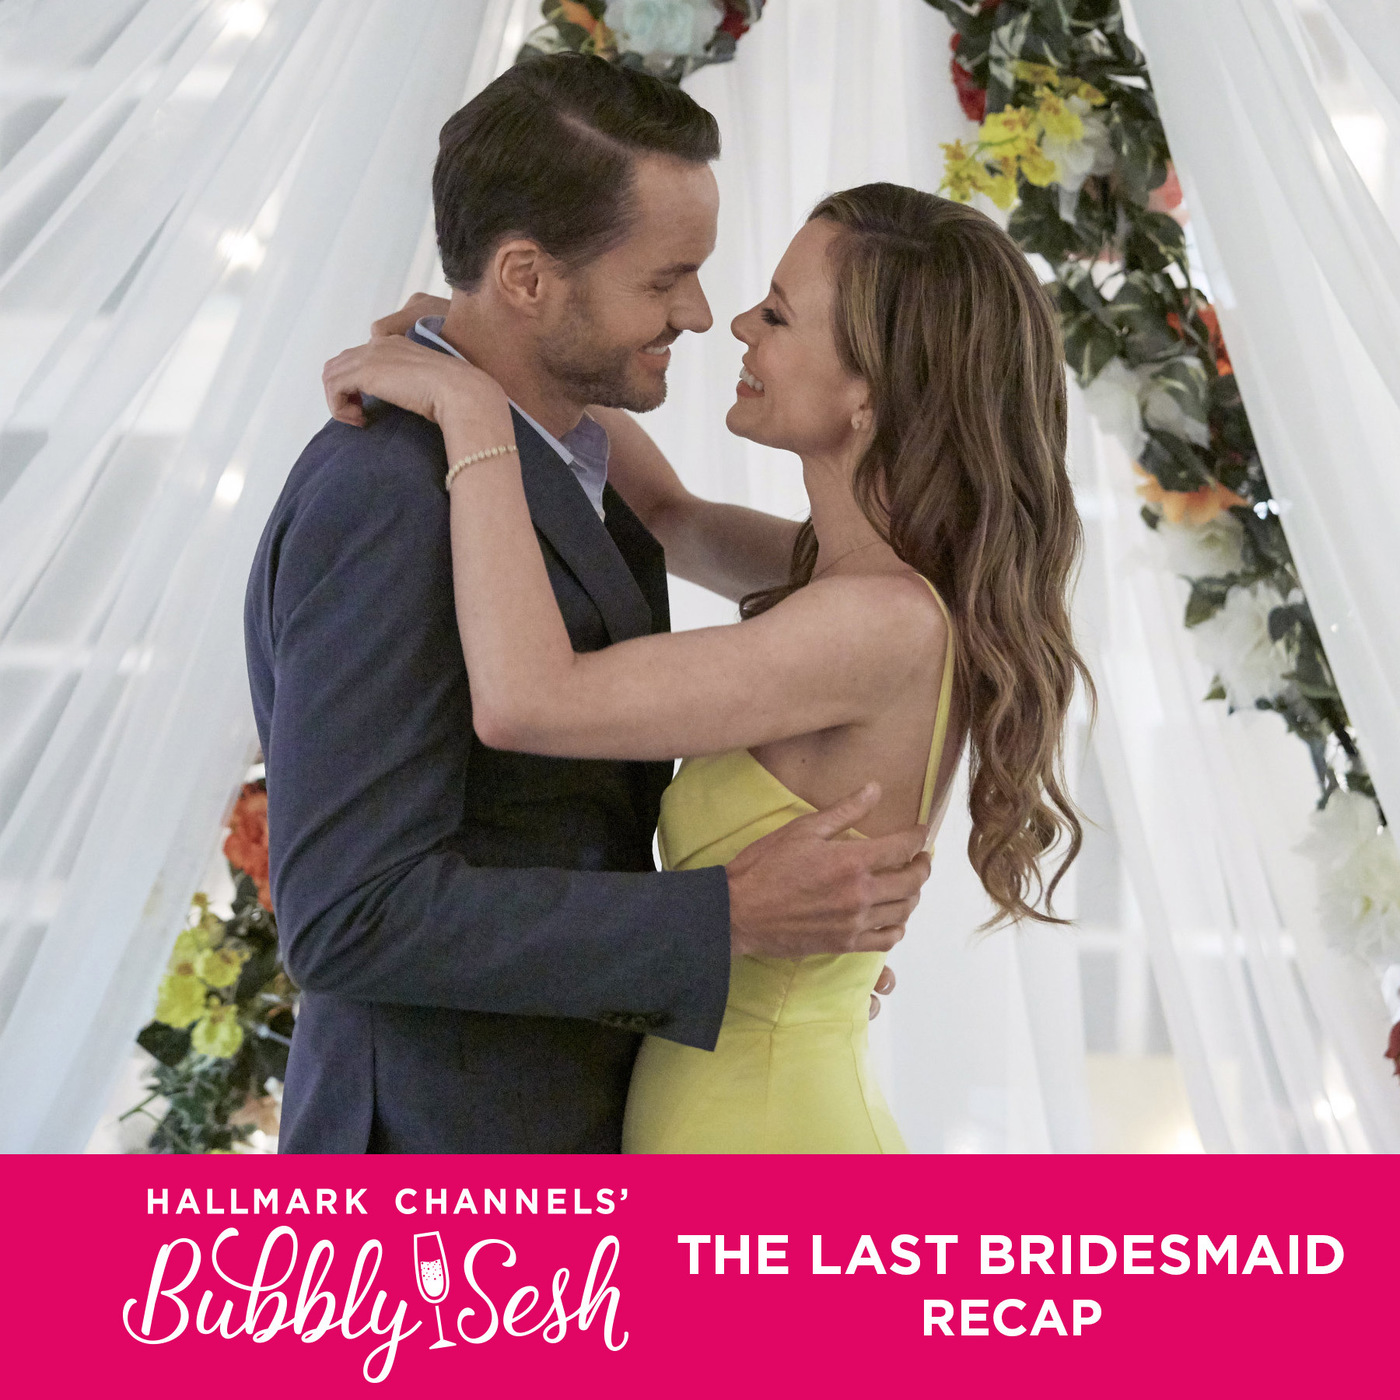 The Last Bridesmaid Recap